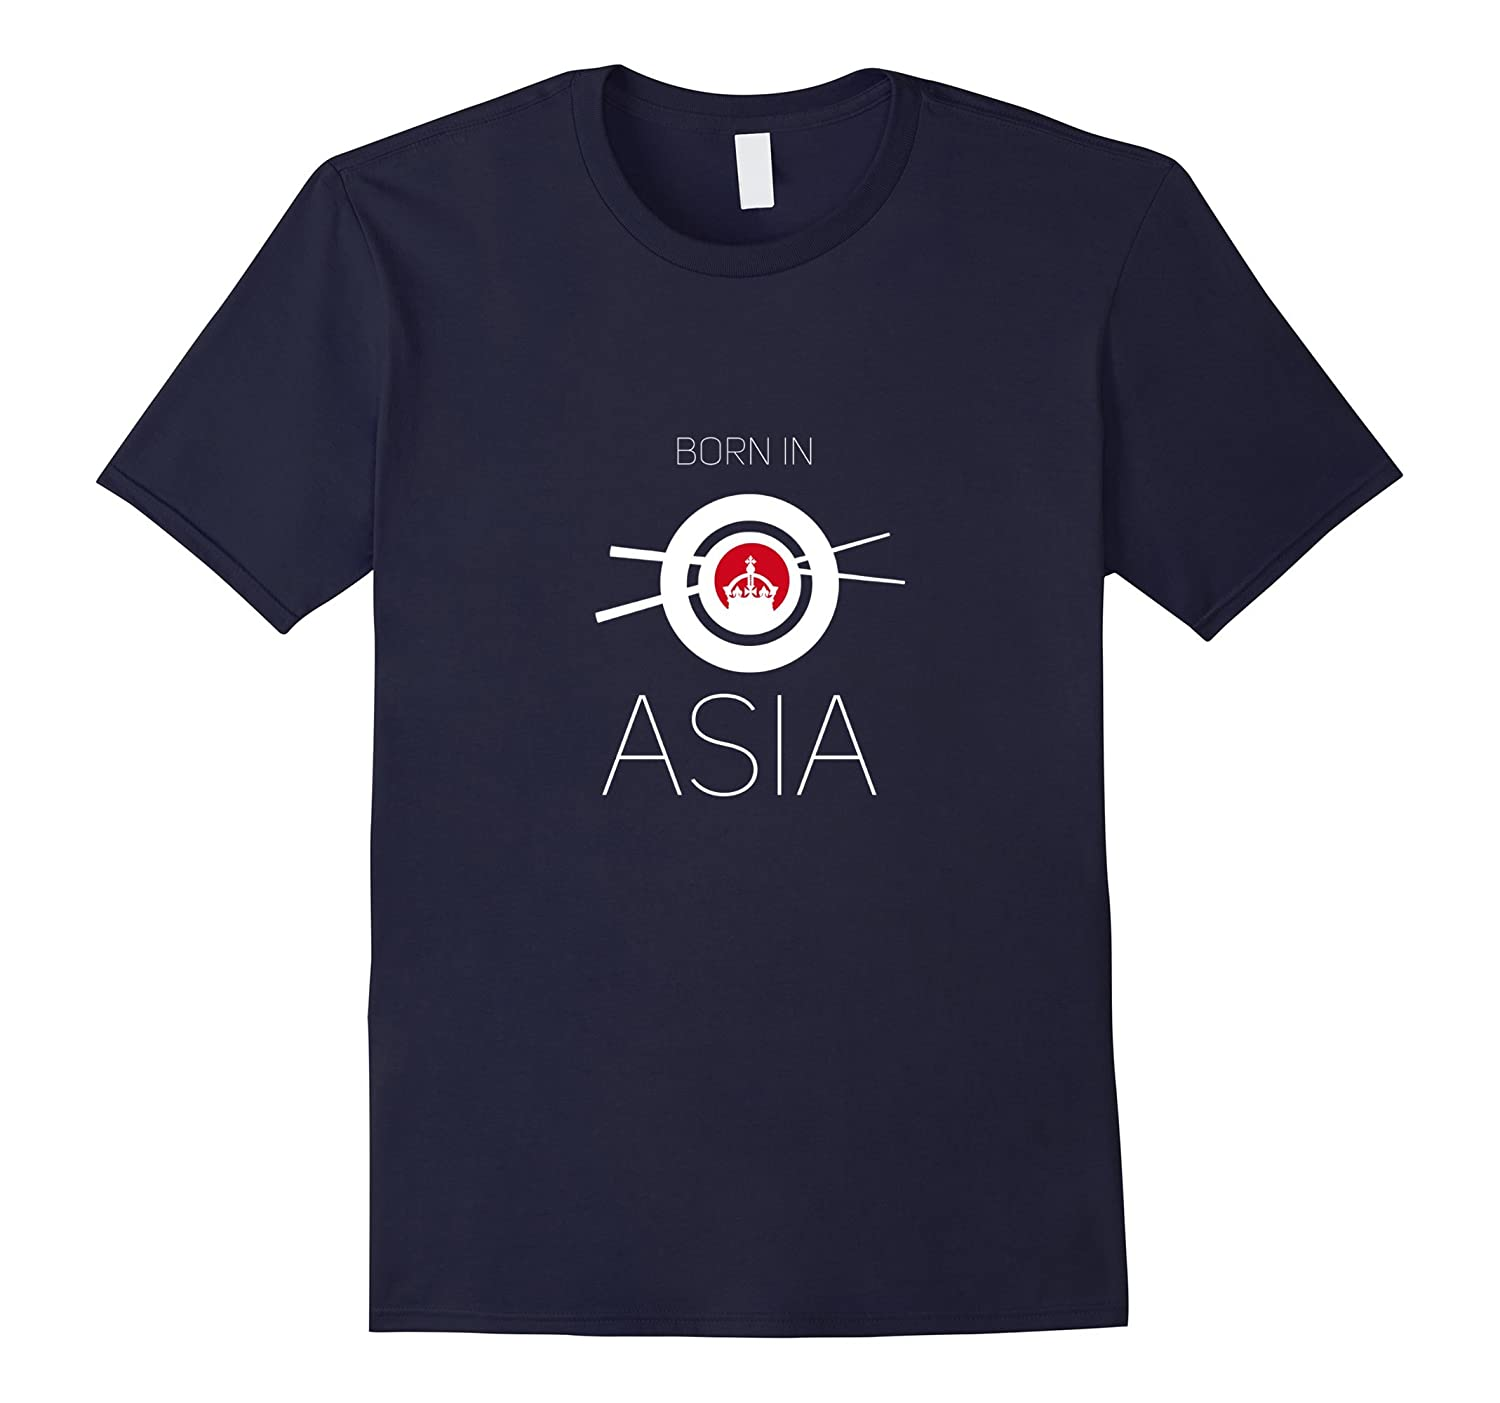 Asia T-shirt gift shirts Born in shirt diff. colours  size-BN